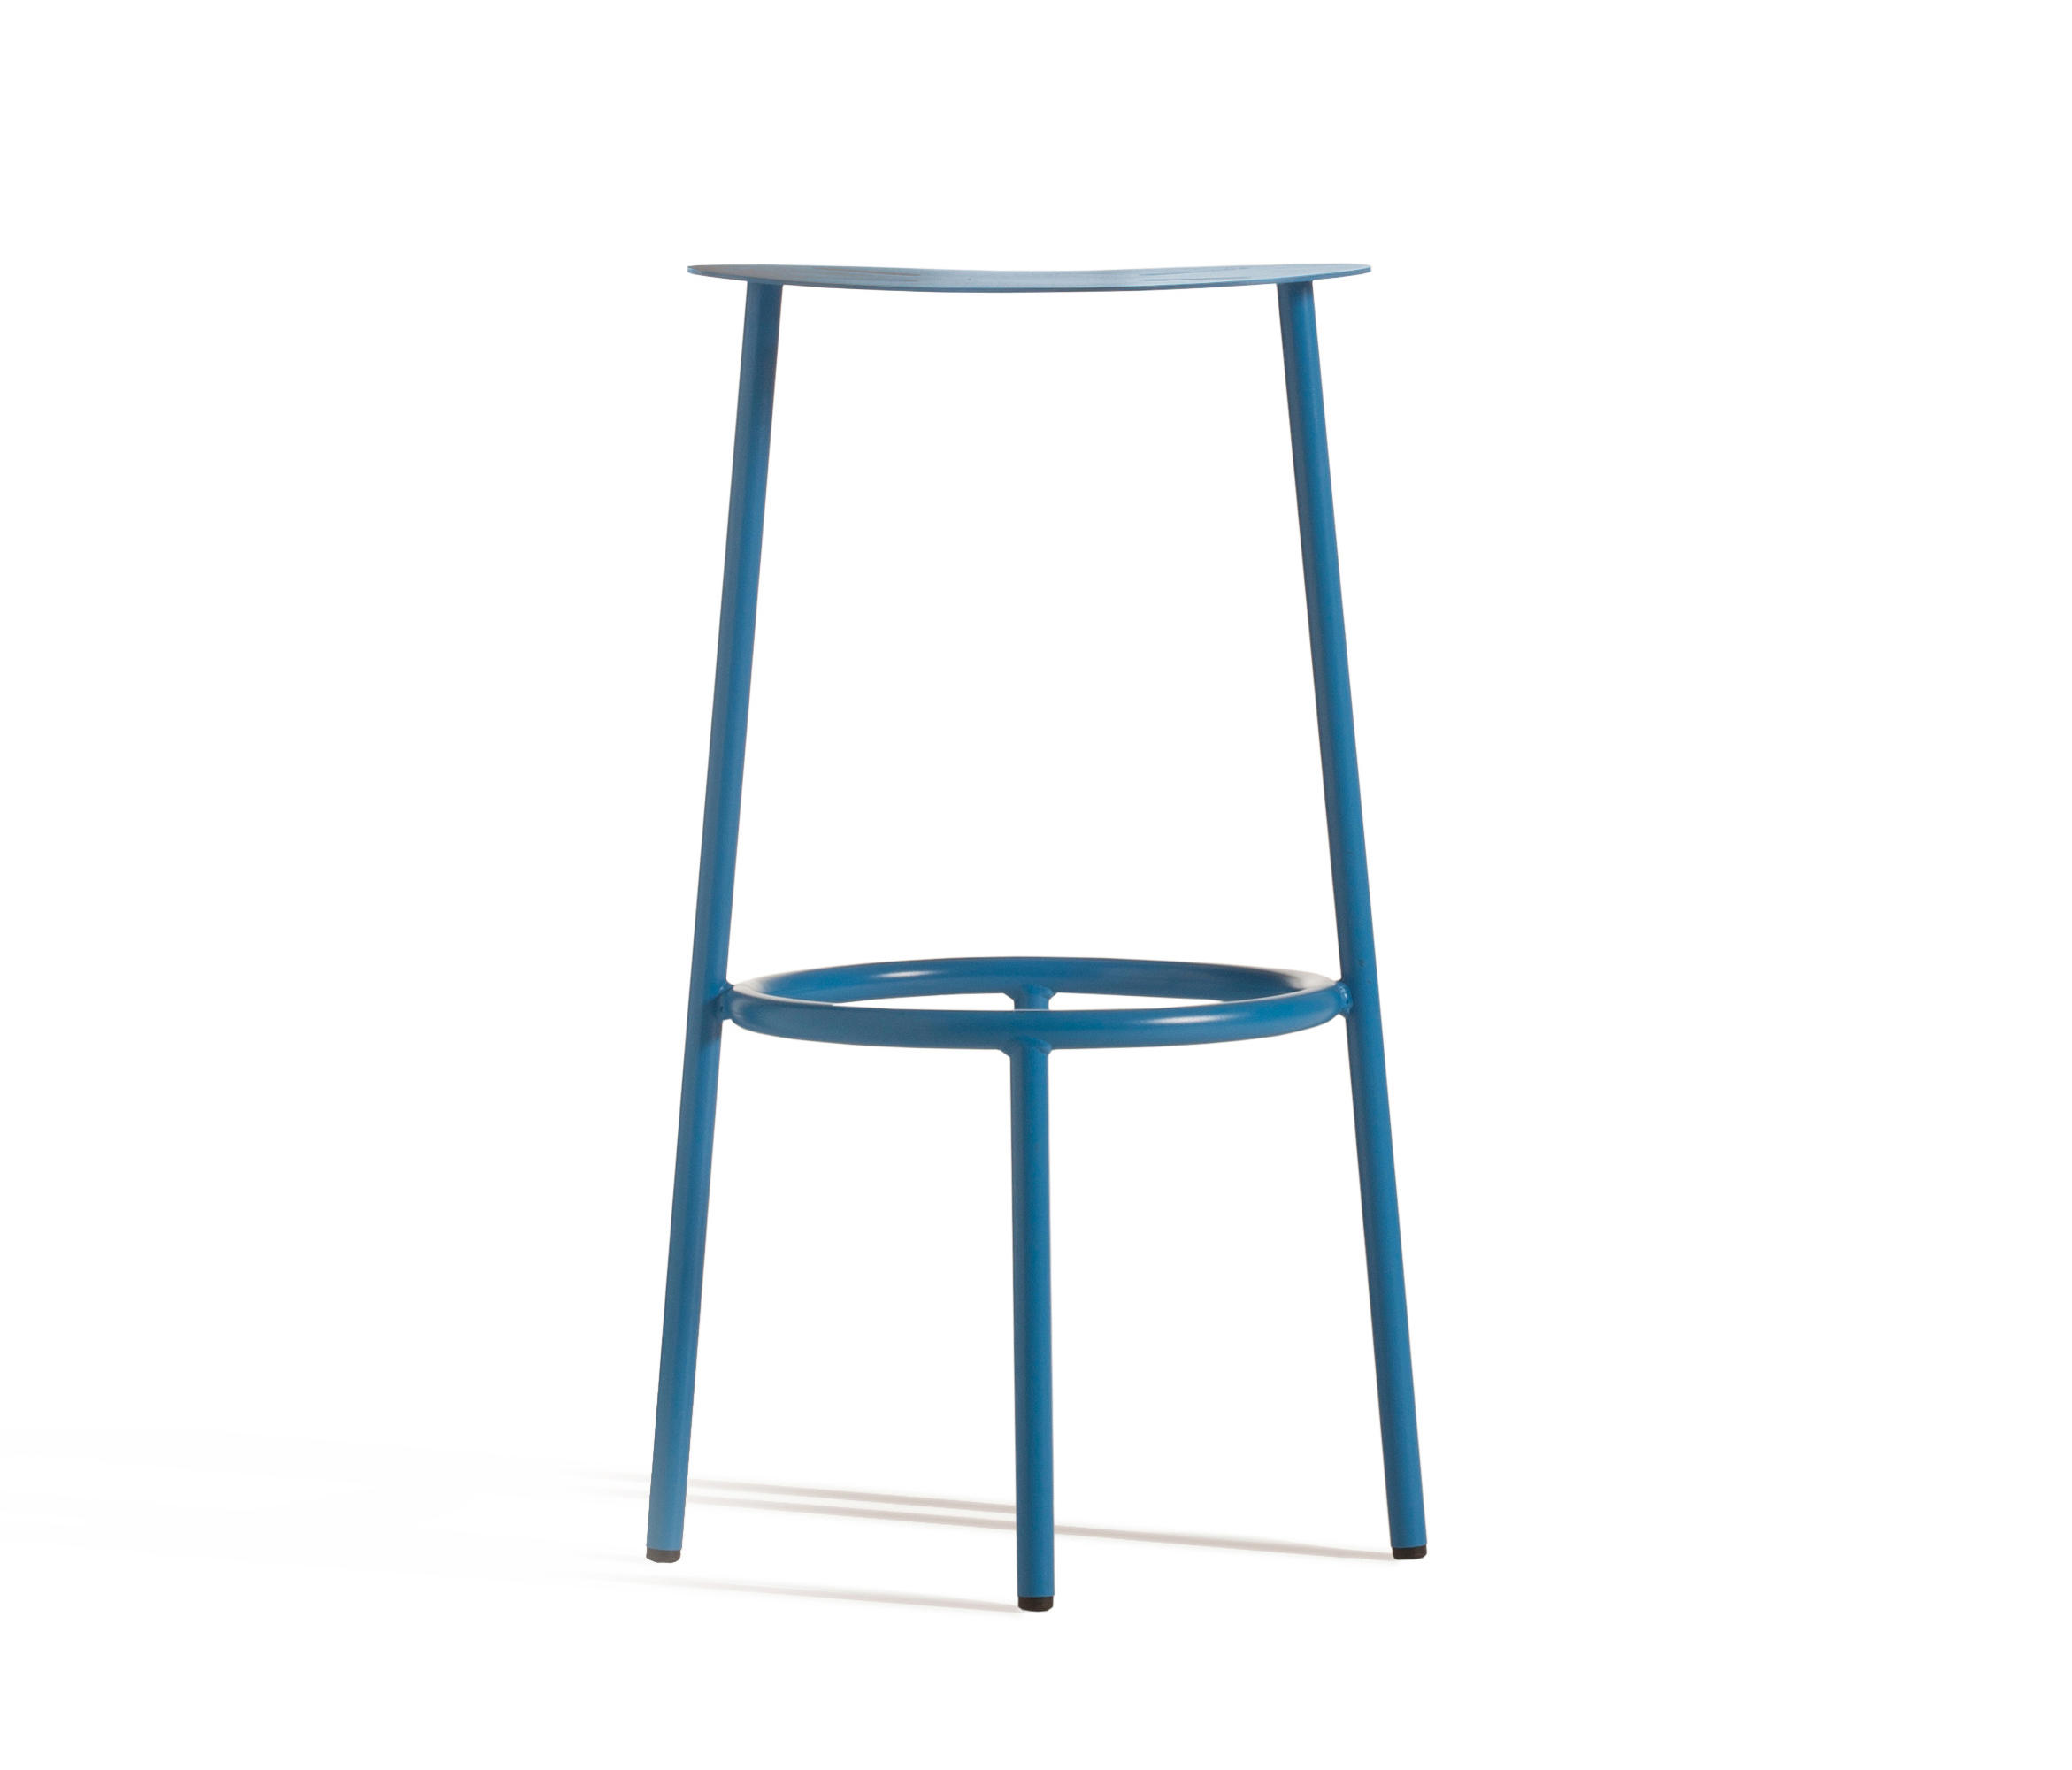 Cloud 400 Bar Stools From Capdell Architonic